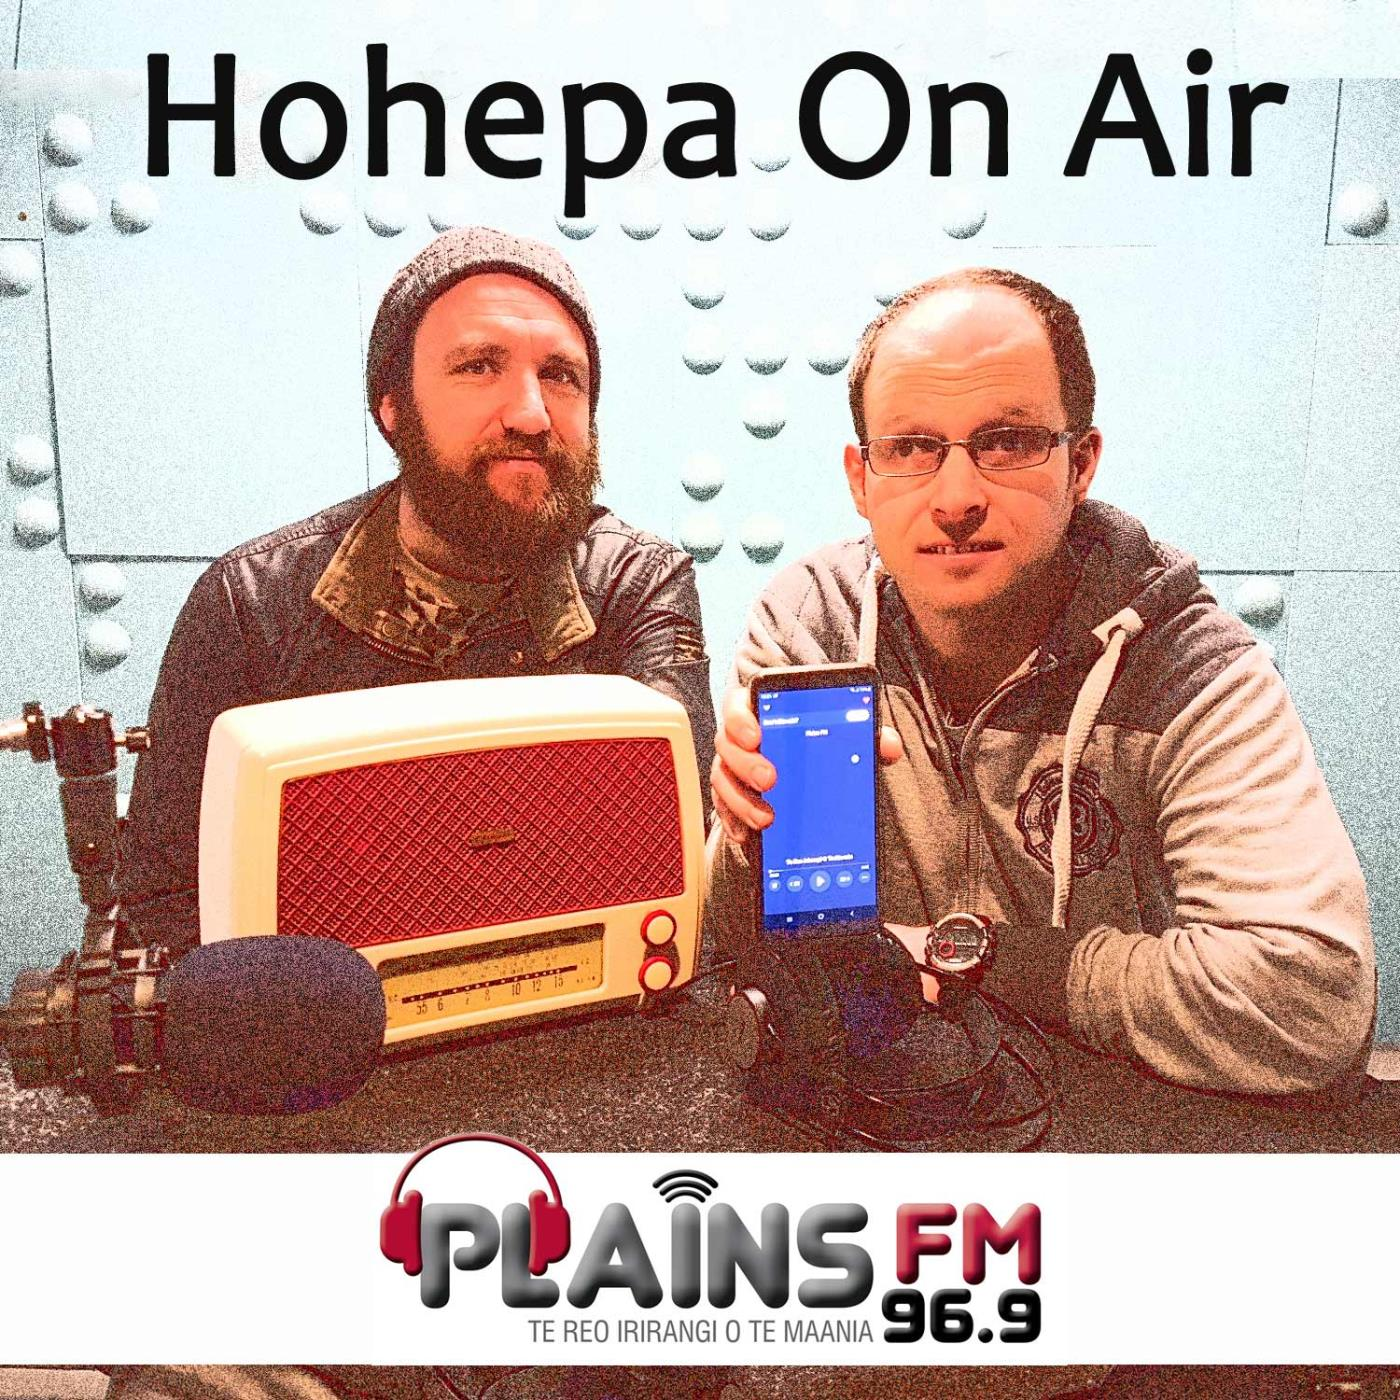 Hohepa on Air